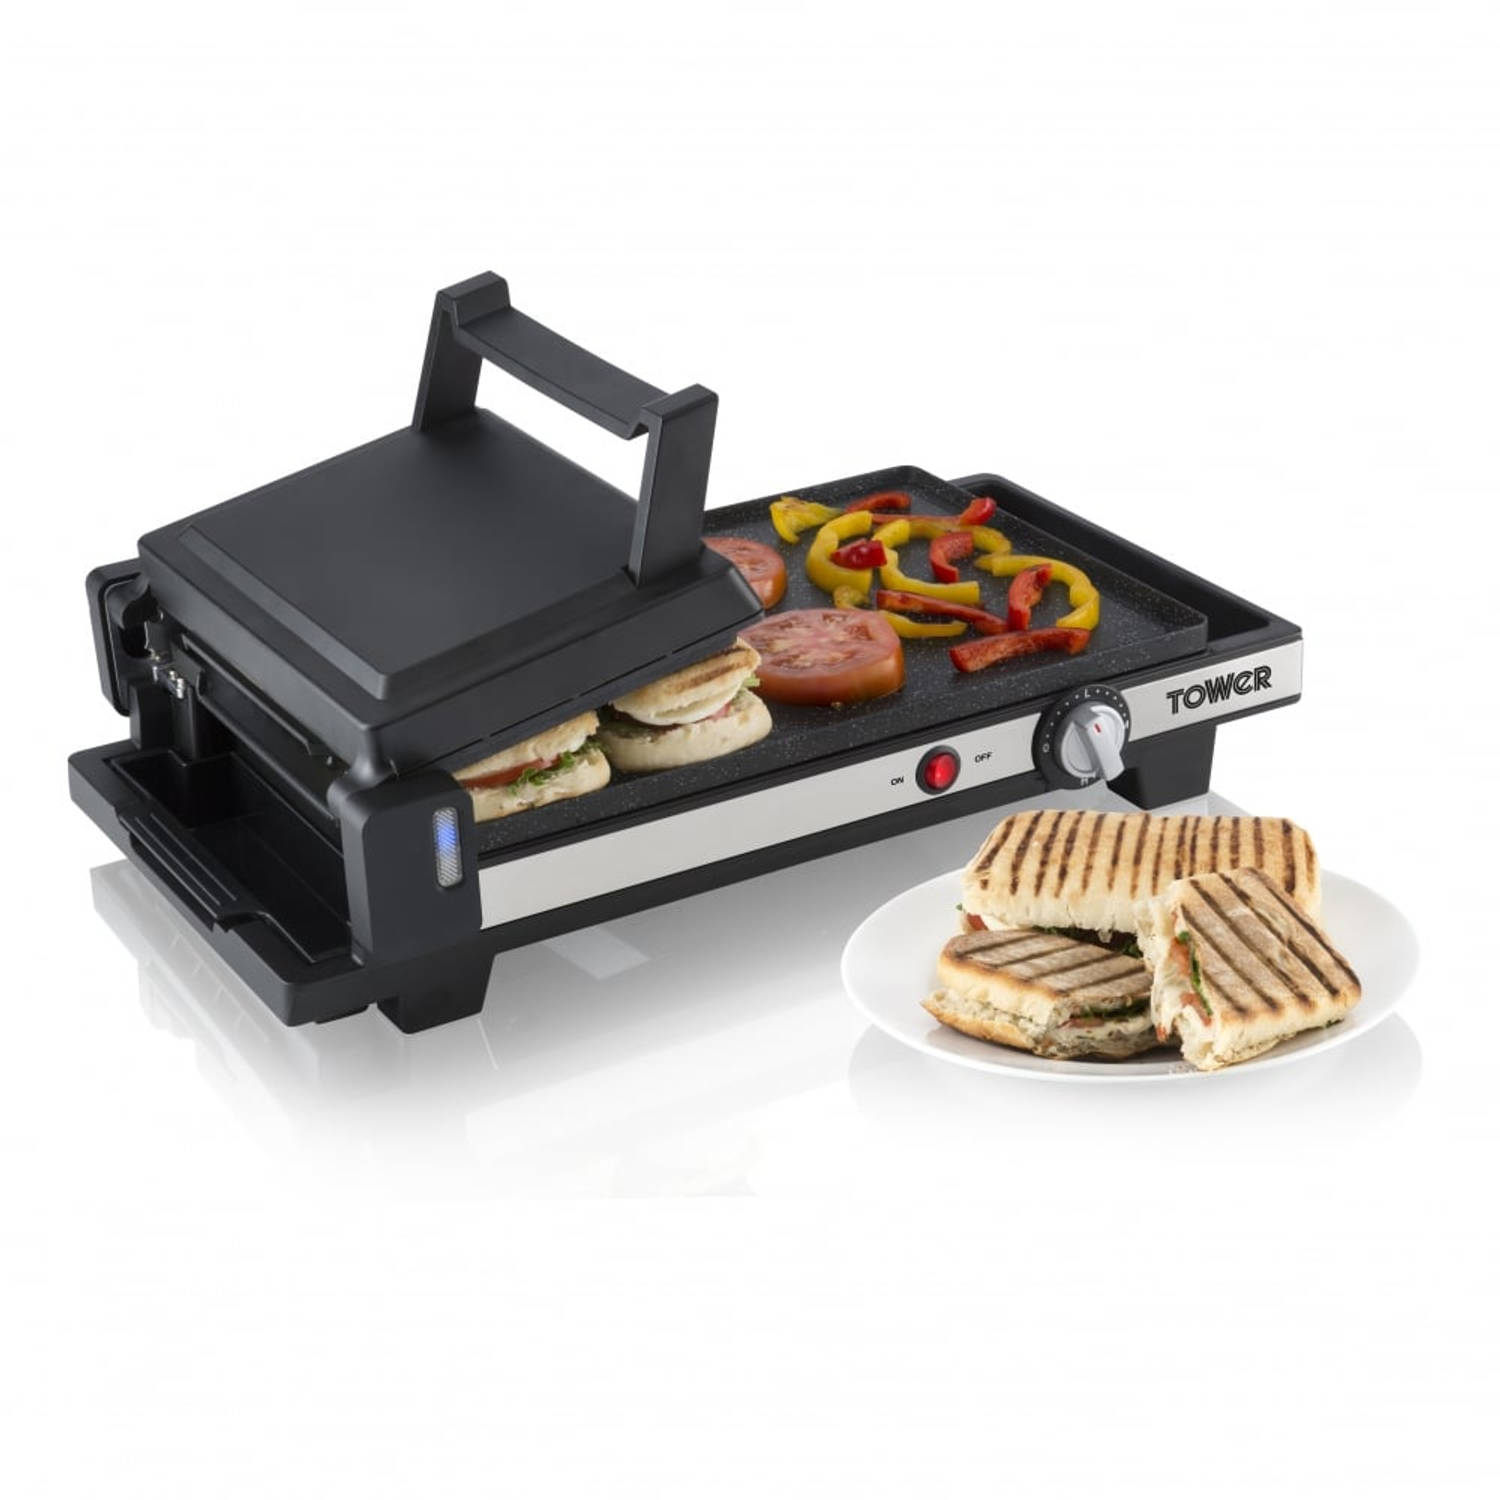 Tower 3-in-1 grill